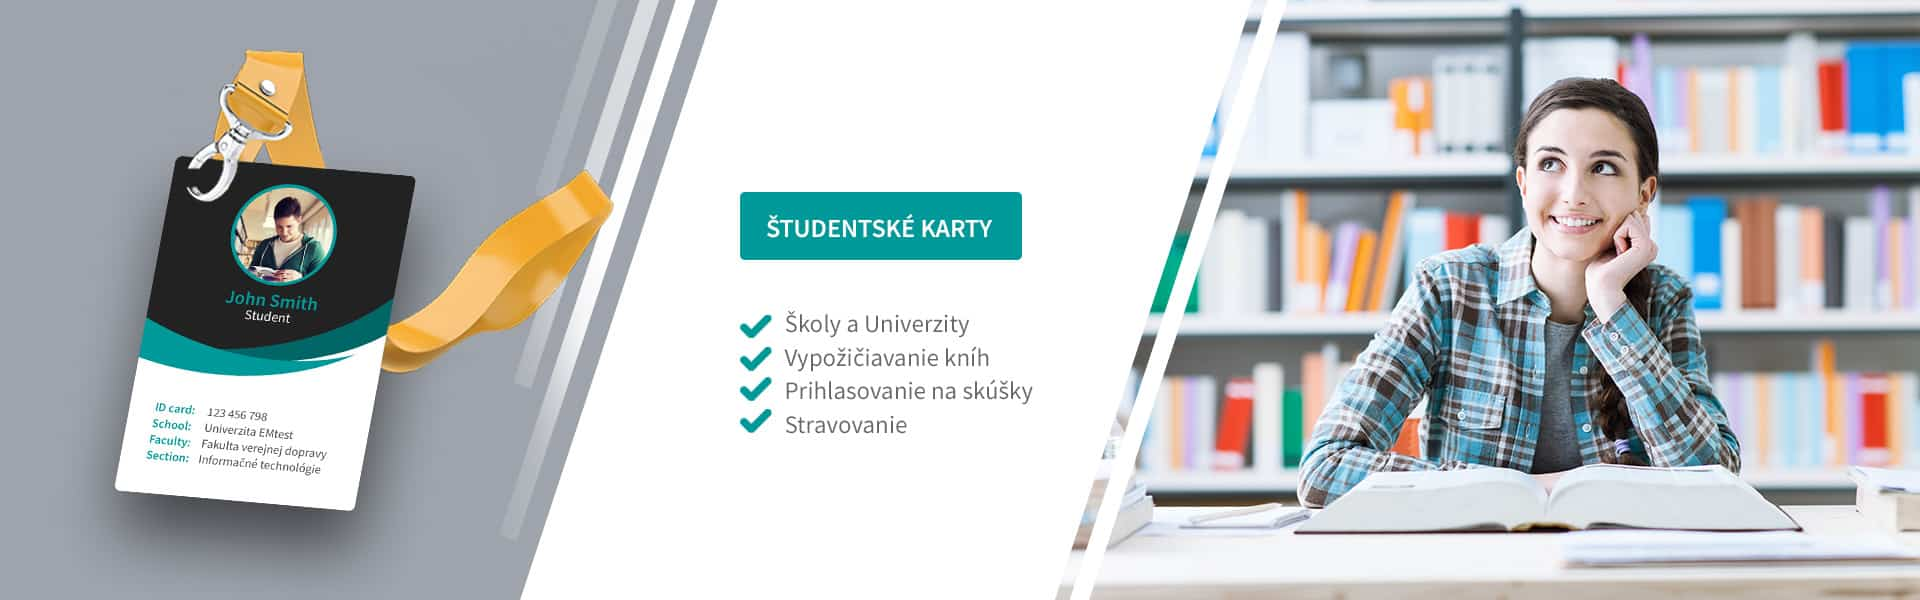 banner_student_03